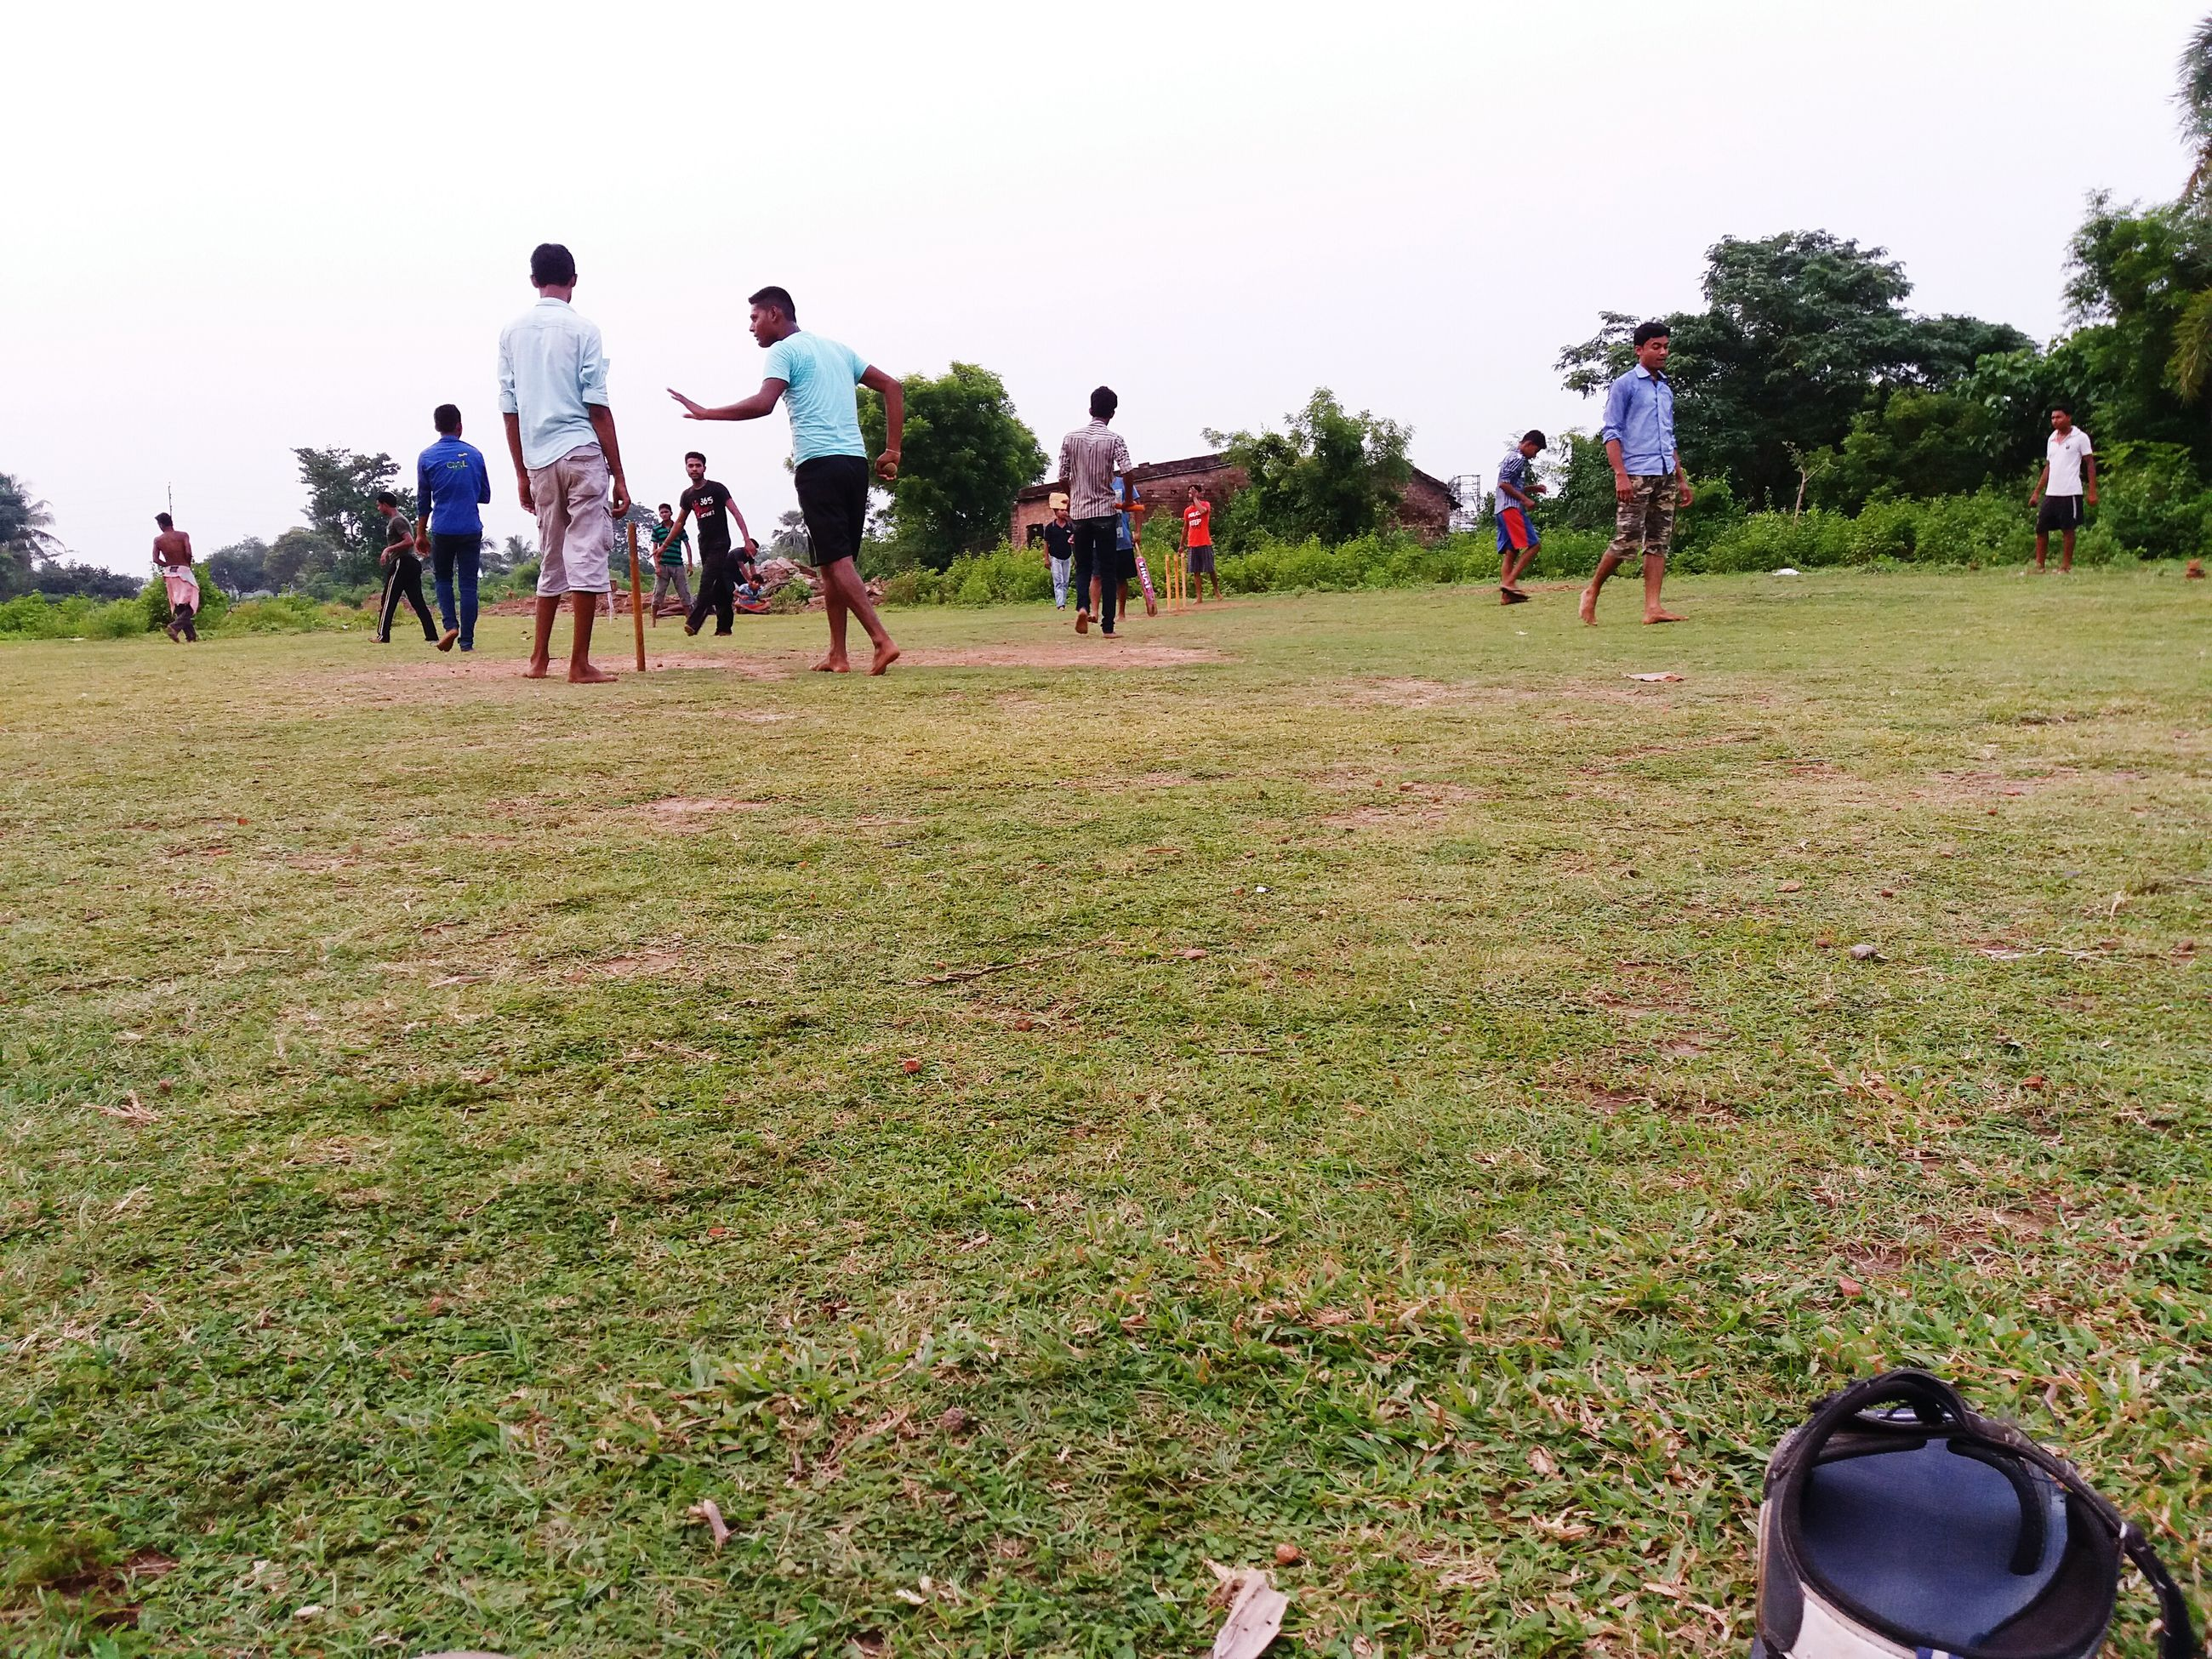 grass, large group of people, men, leisure activity, lifestyles, field, person, grassy, green color, clear sky, crowd, togetherness, mixed age range, day, outdoors, copy space, park - man made space, medium group of people, group of people